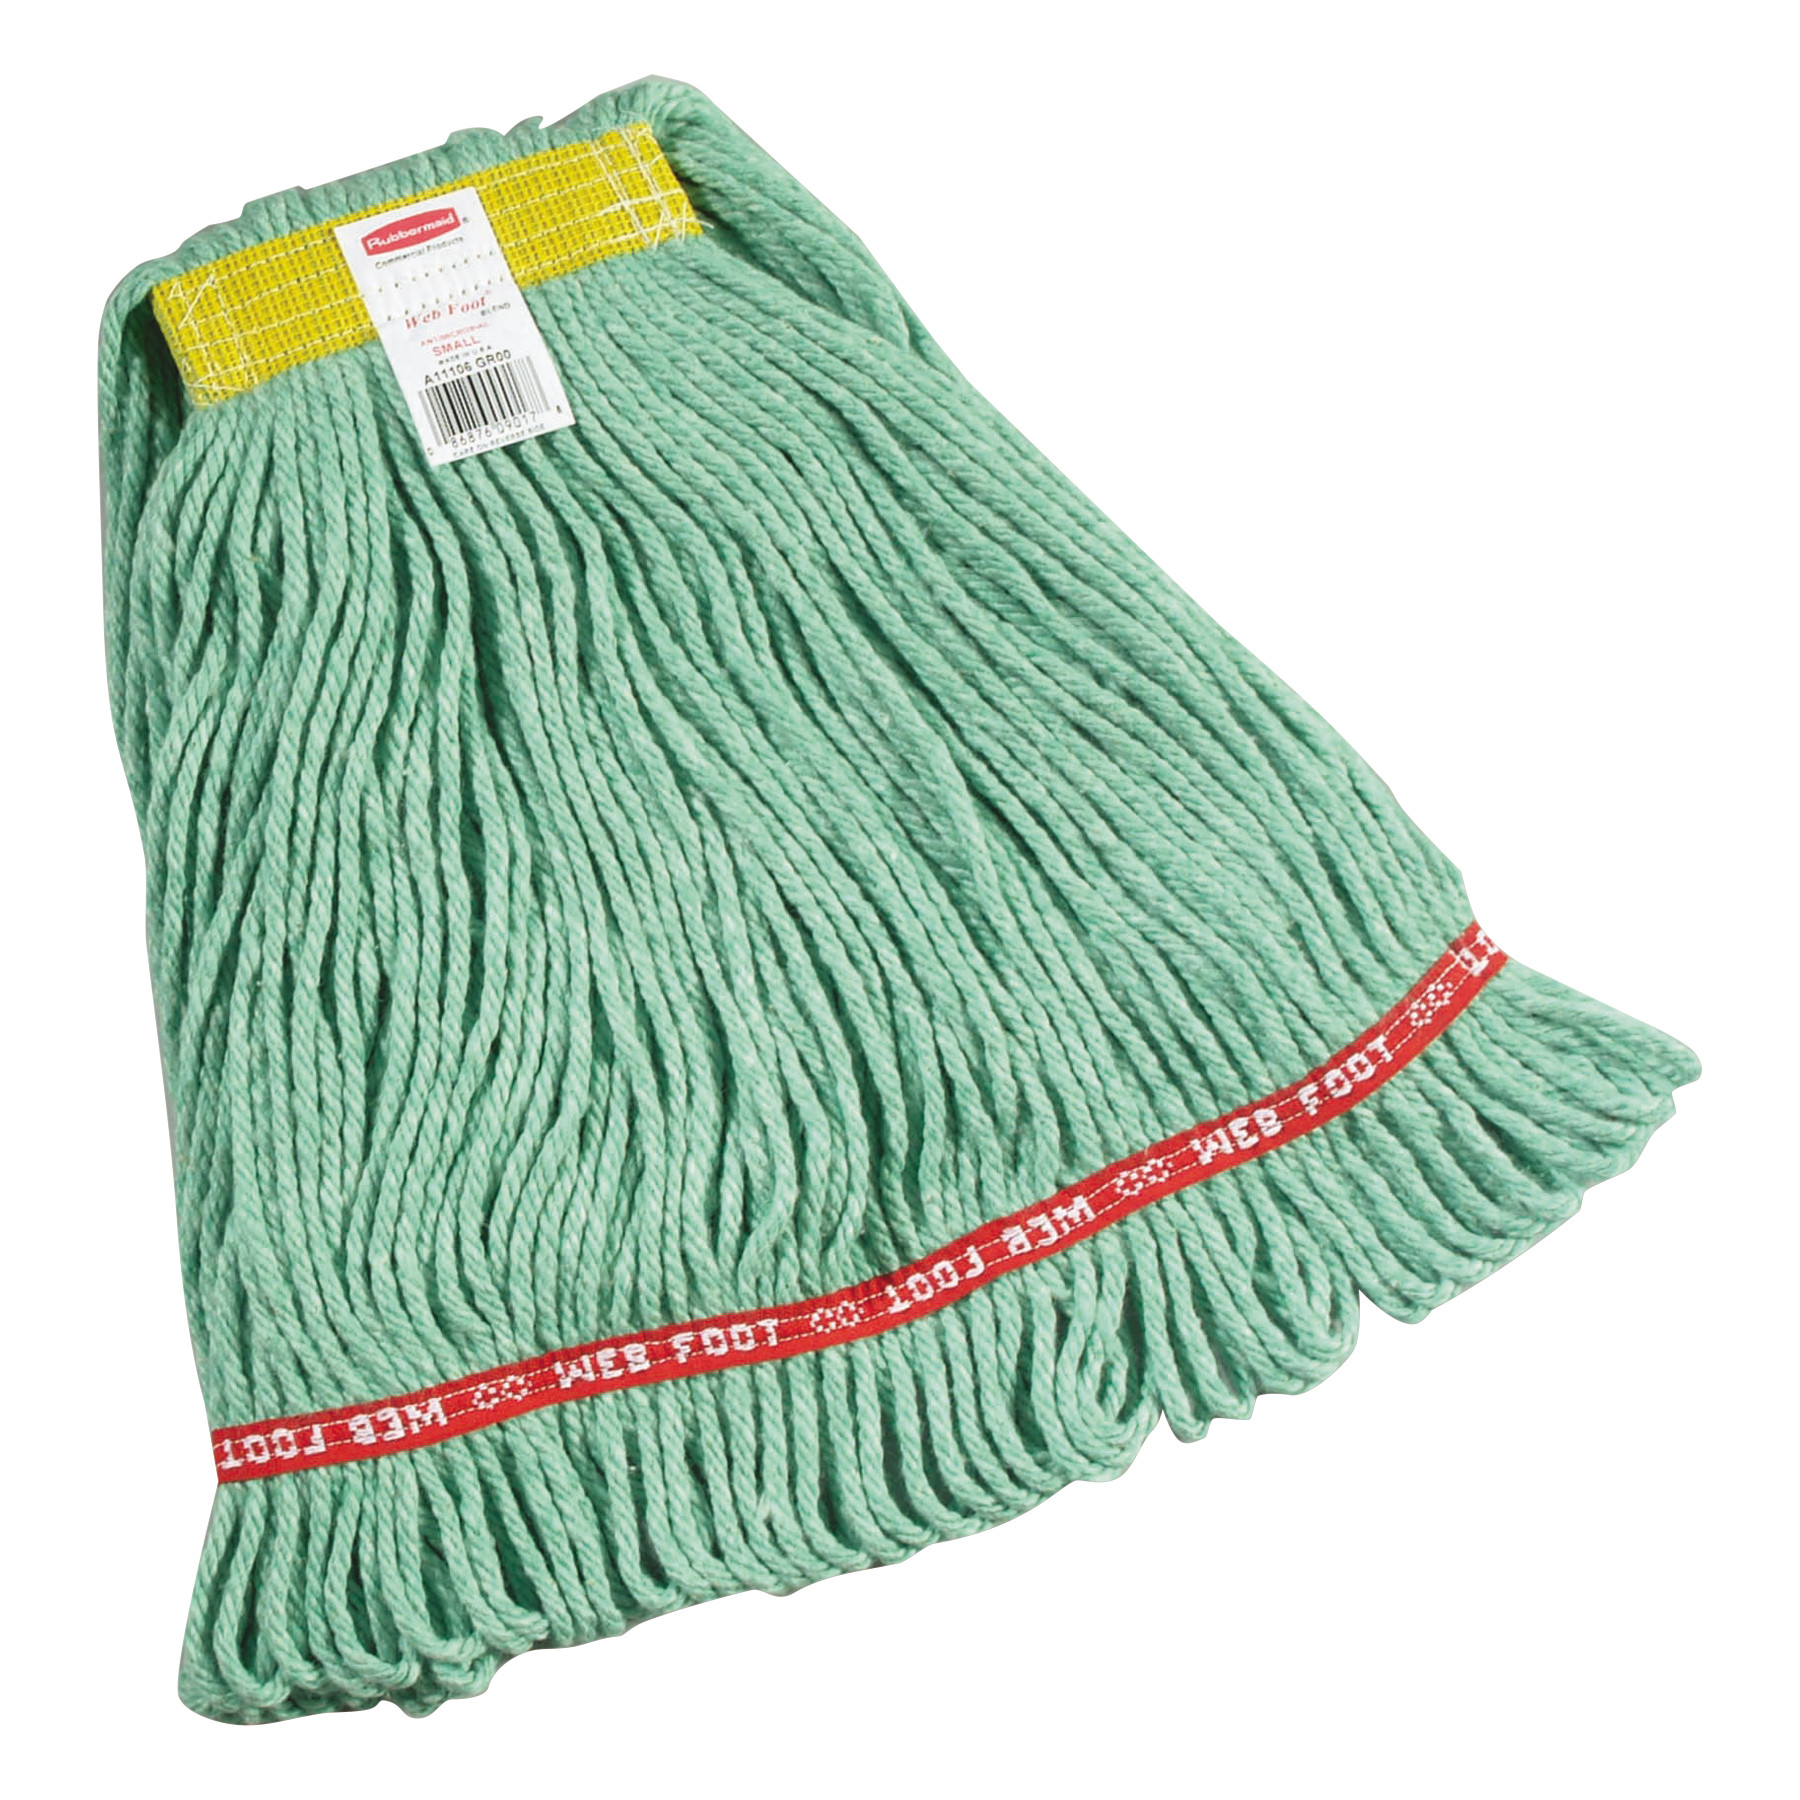 Rubbermaid Commercial Web Foot Small Green Cotton/Synthetic Wet Mops, 6 count